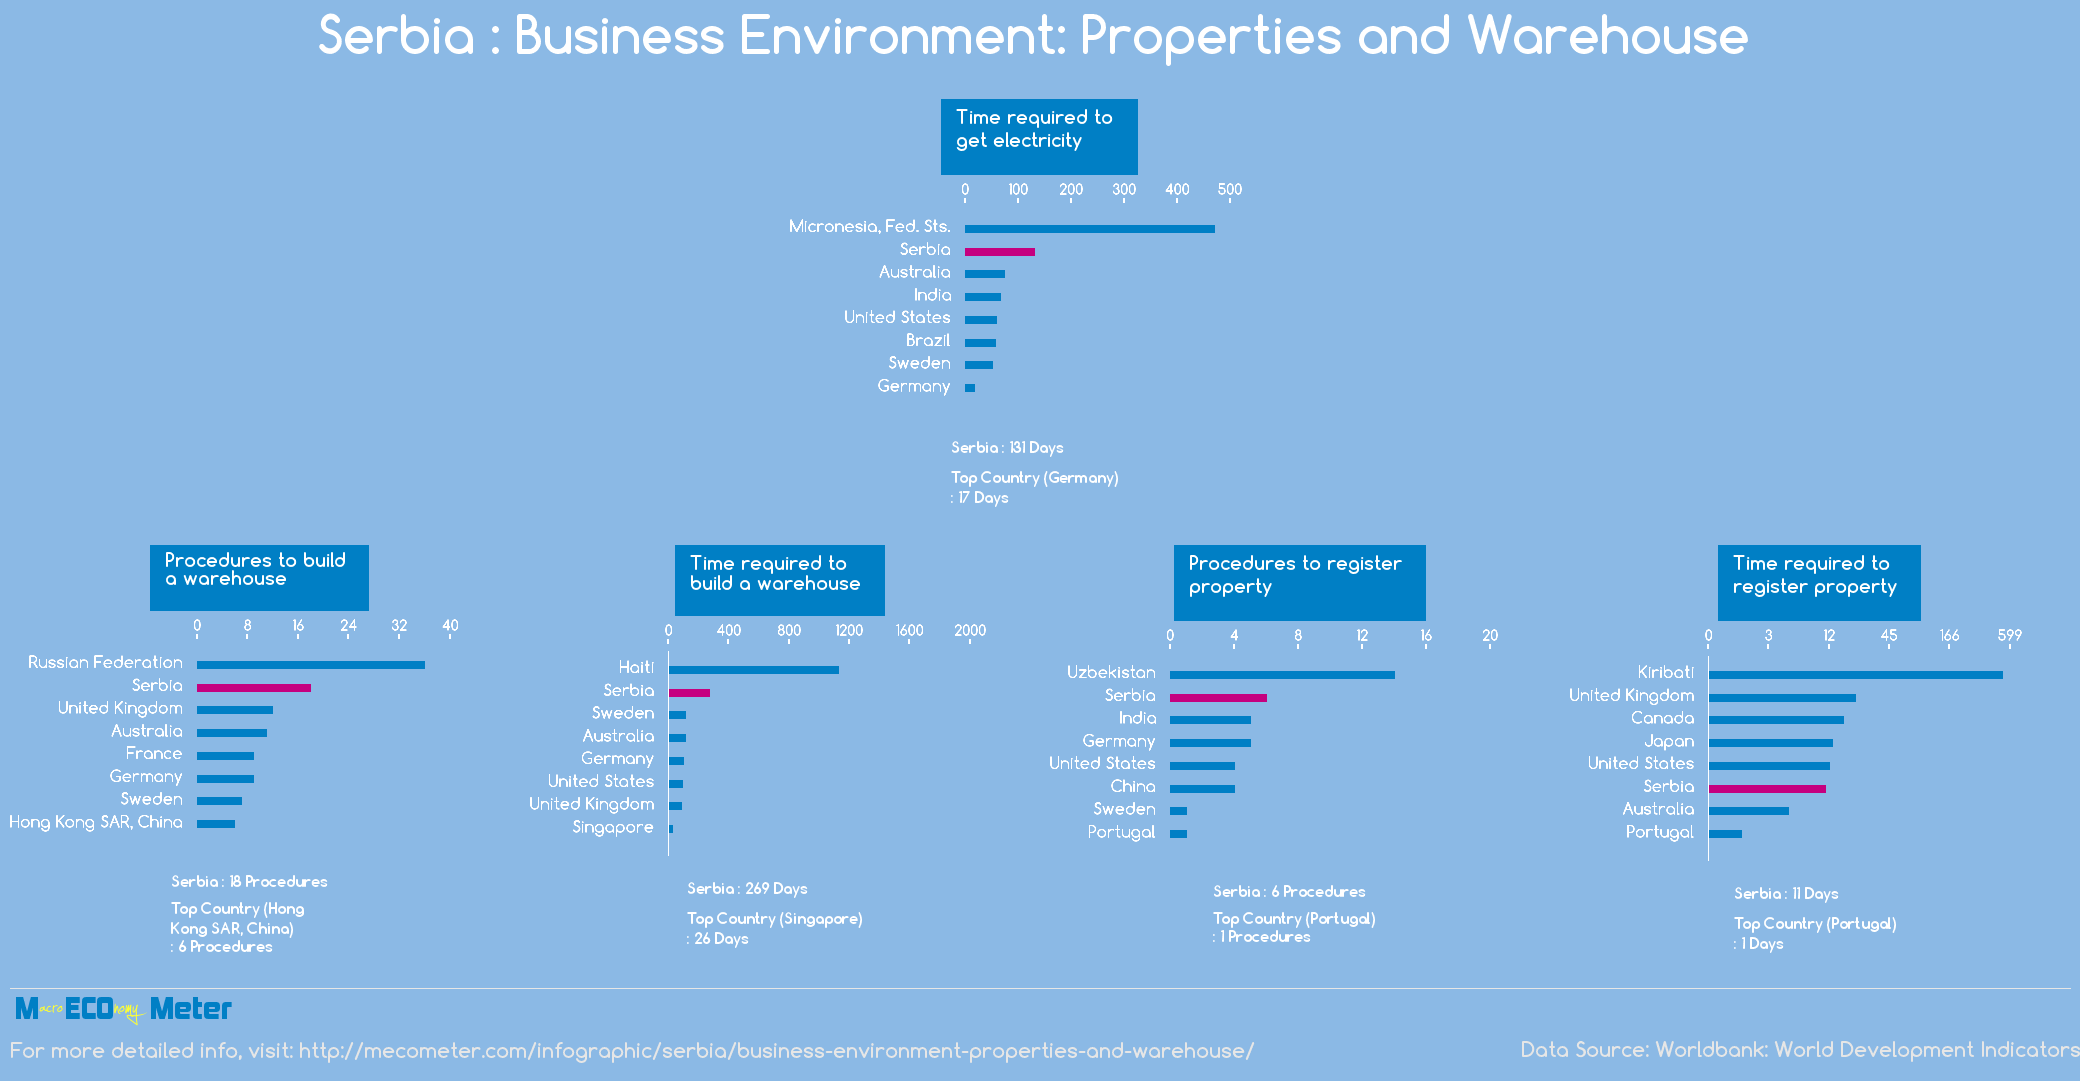 Serbia : Business Environment: Properties and Warehouse